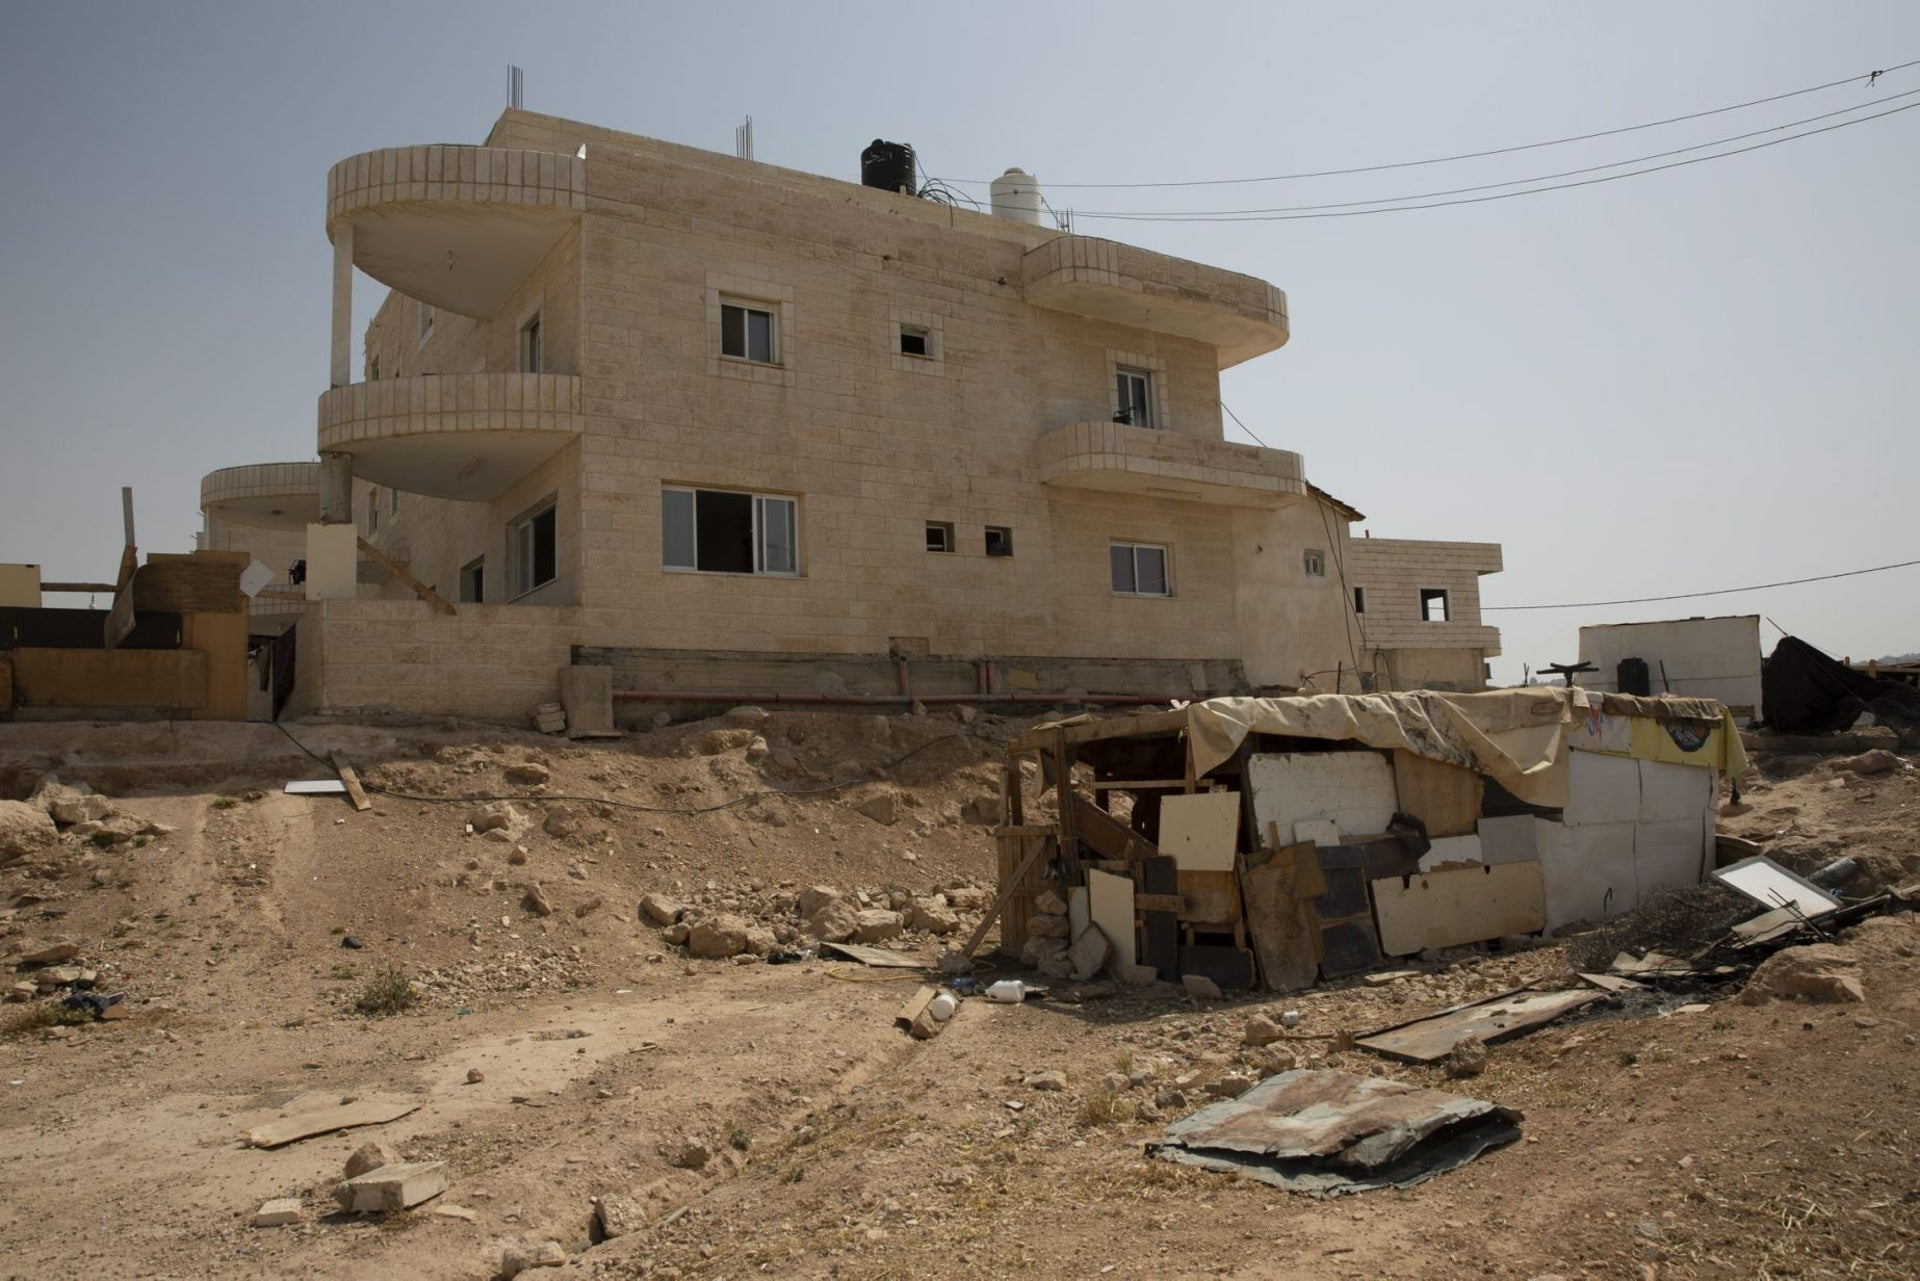 Plots leased to the Bedouin at al-Jabal in the West Bank. From outside, the houses look like villas, but not inside, May 27, 2018.